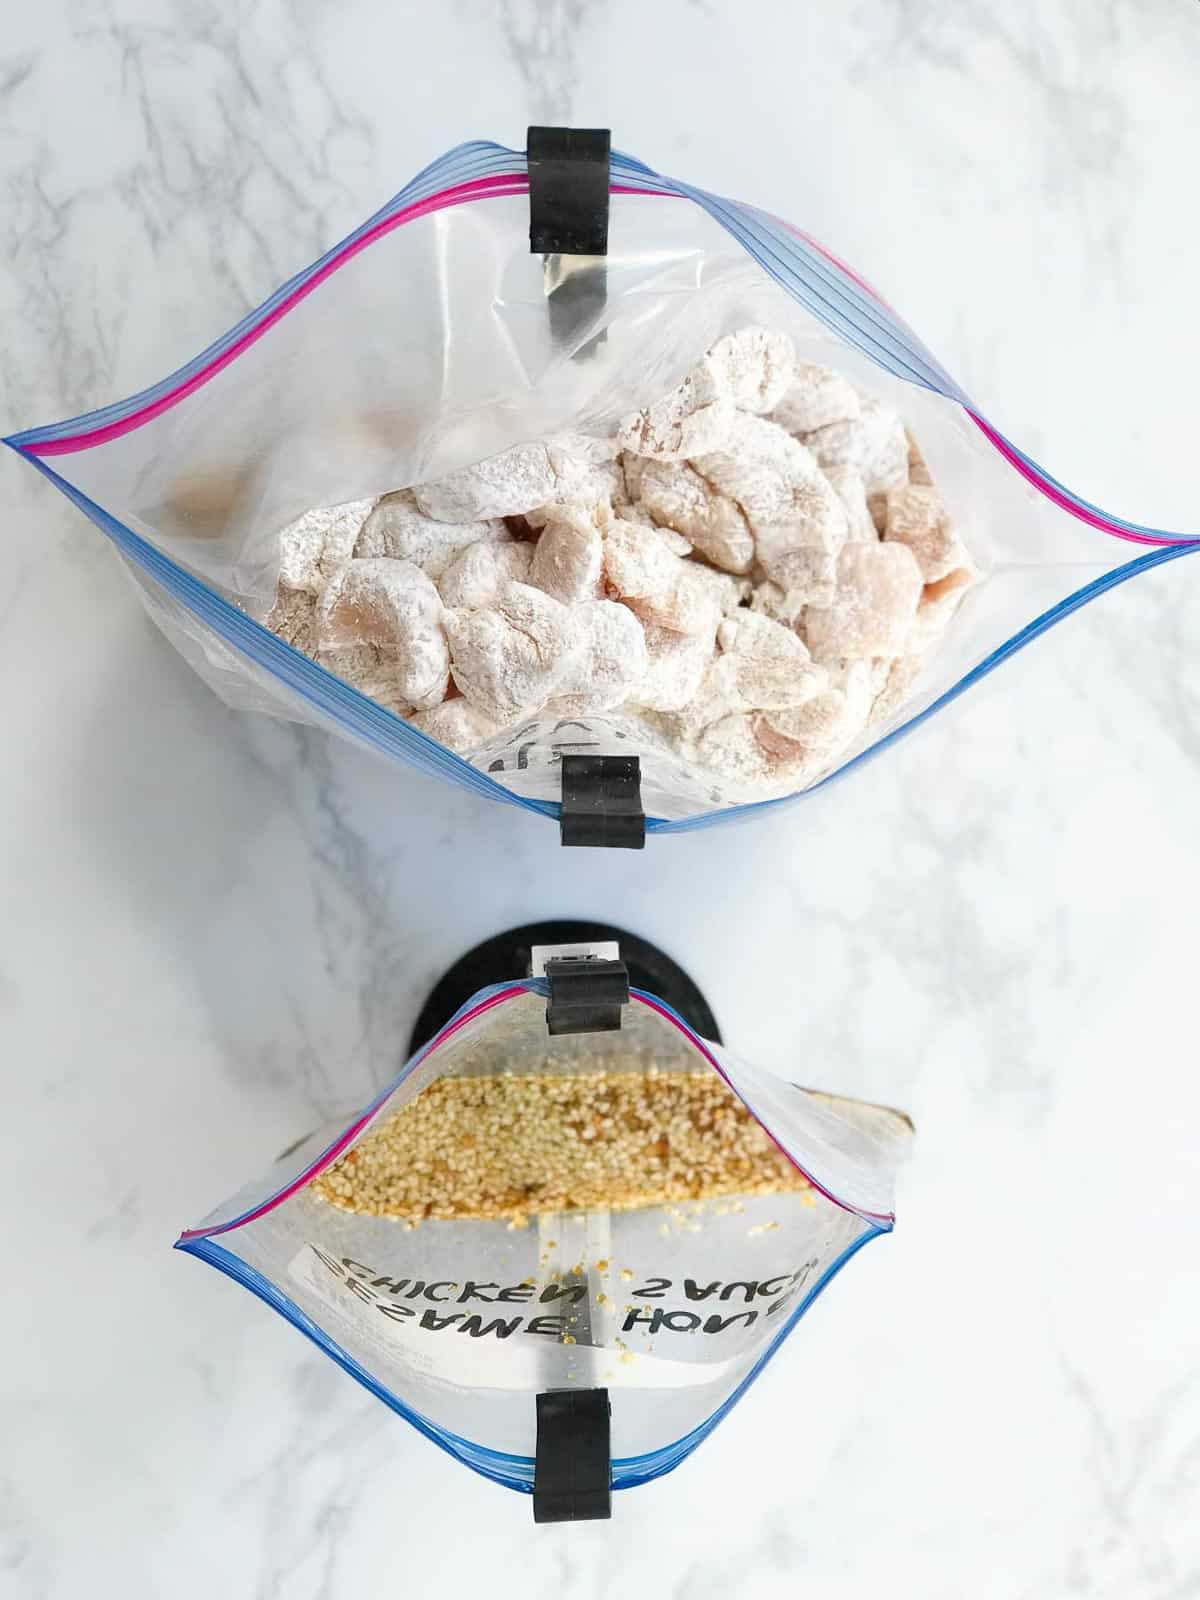 Cut up chicken pieces dusted with flour added to a resealable bag held in bag holders and a smaller bag of seasonings also held with bag holders.